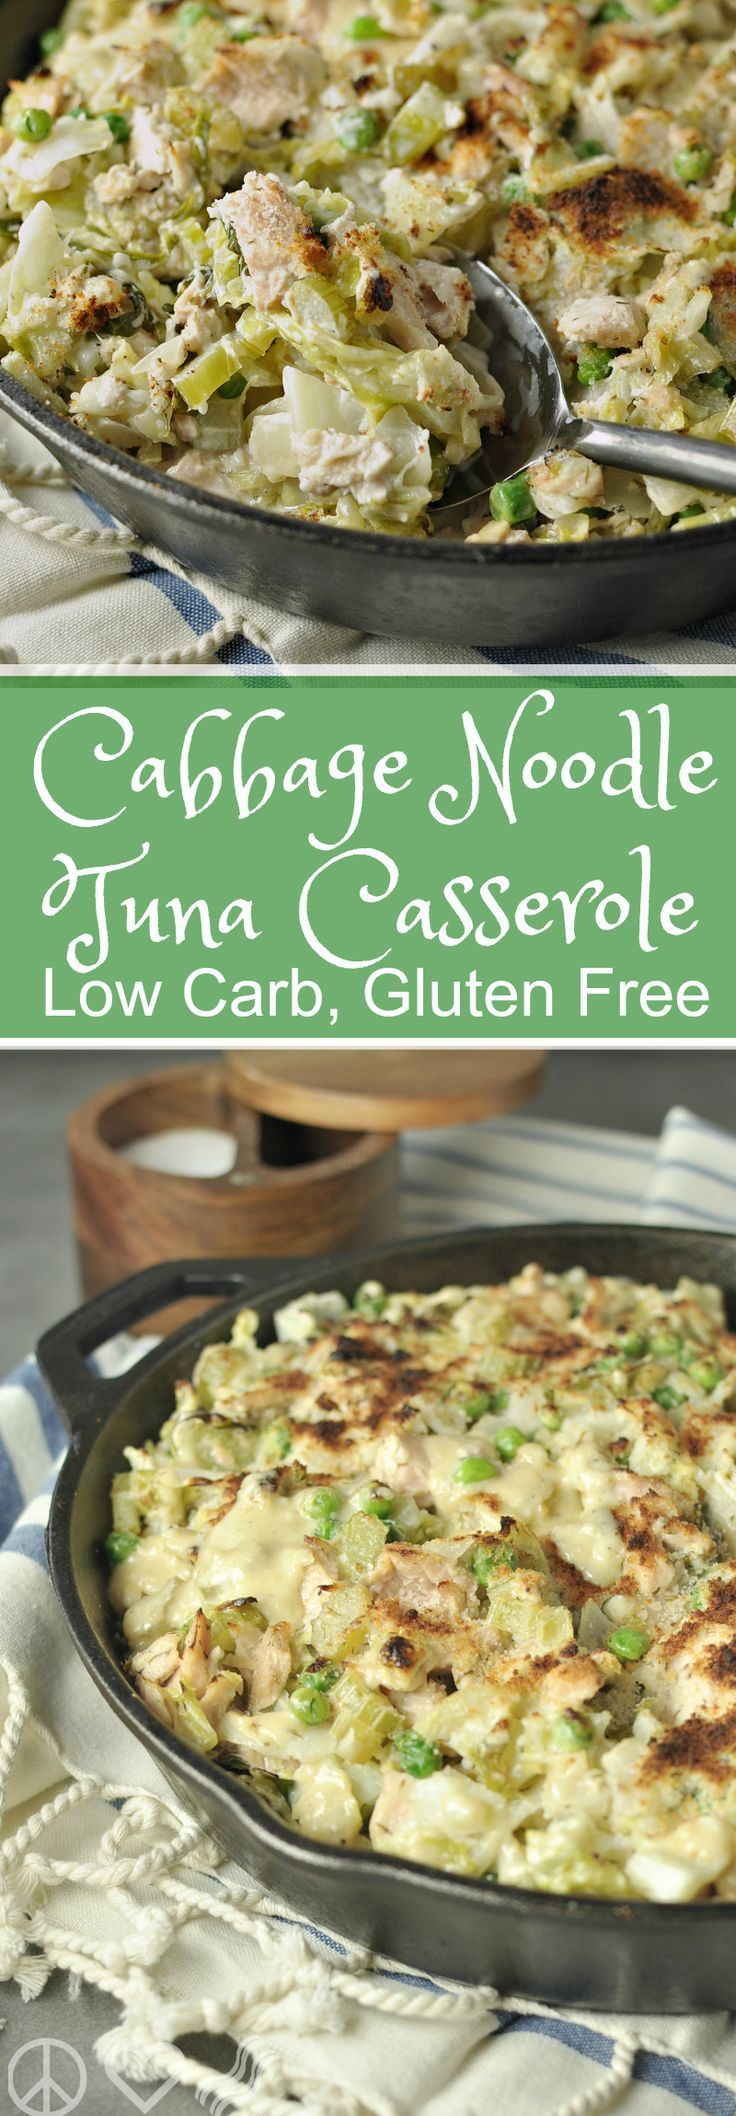 288 best images about low carb fish recipes on pinterest for How many carbs in fish